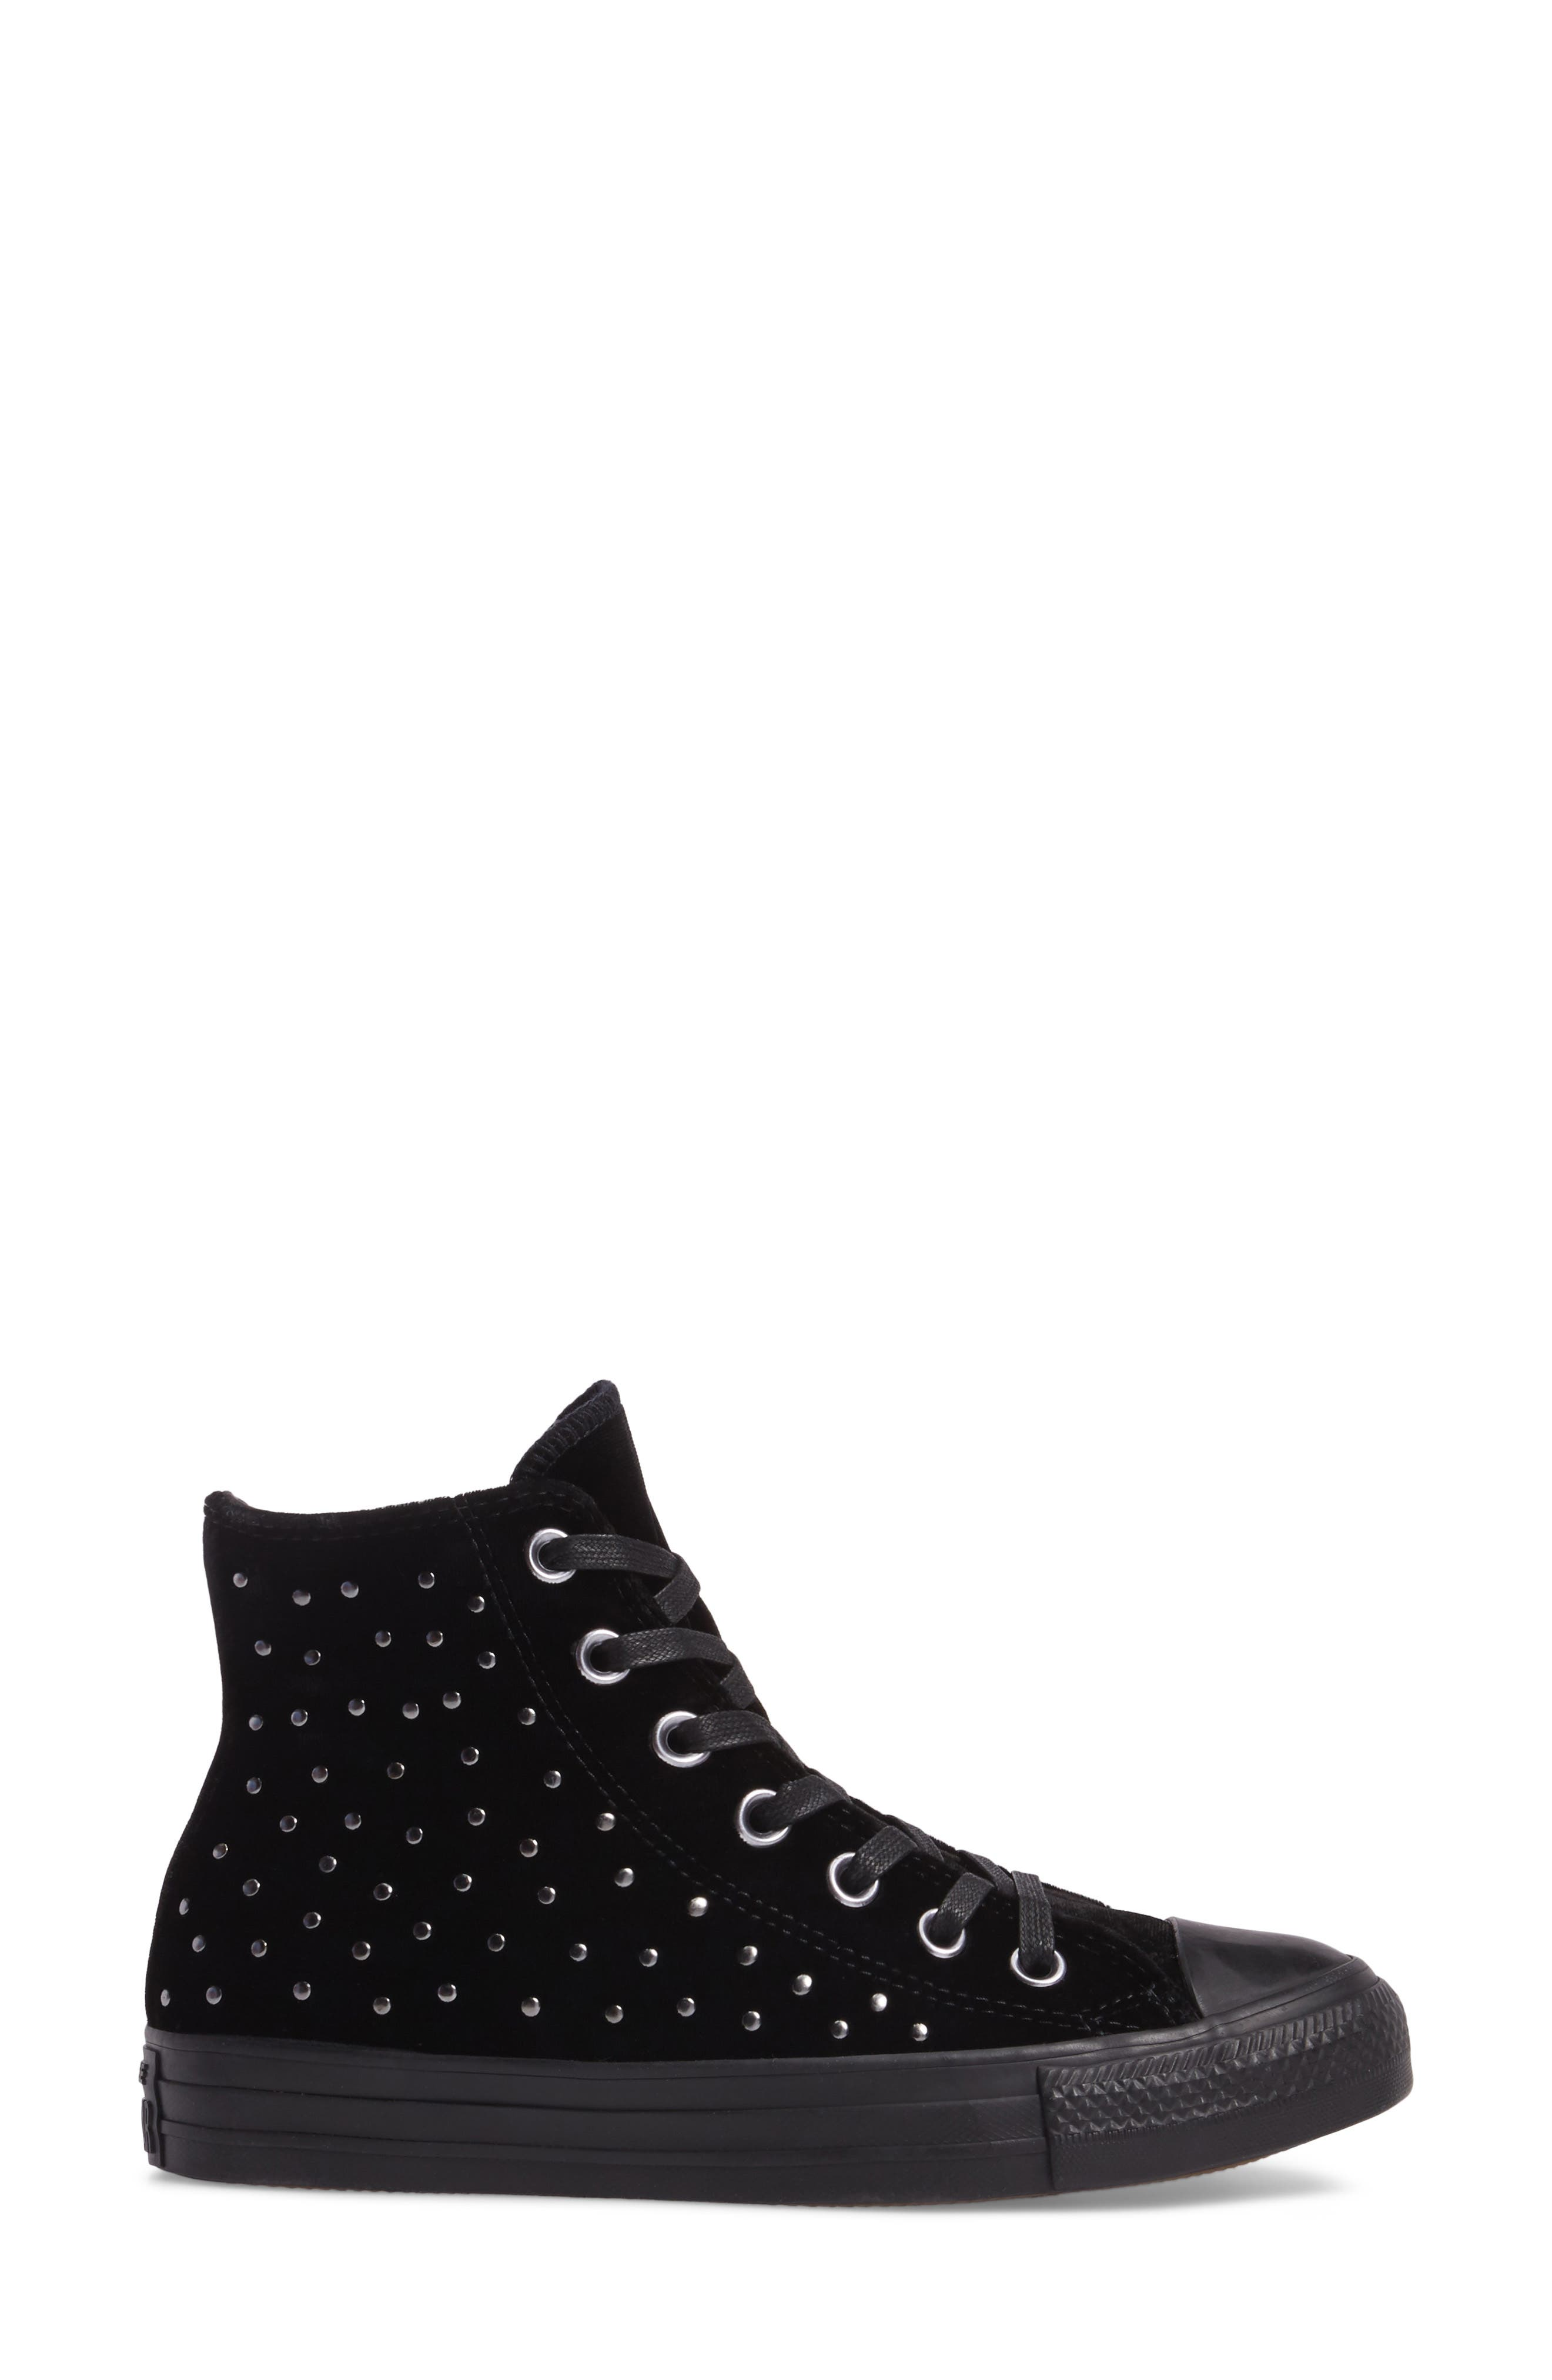 Alternate Image 3  - Converse Chuck Taylor® All Star® Studded High Top Sneakers (Women)